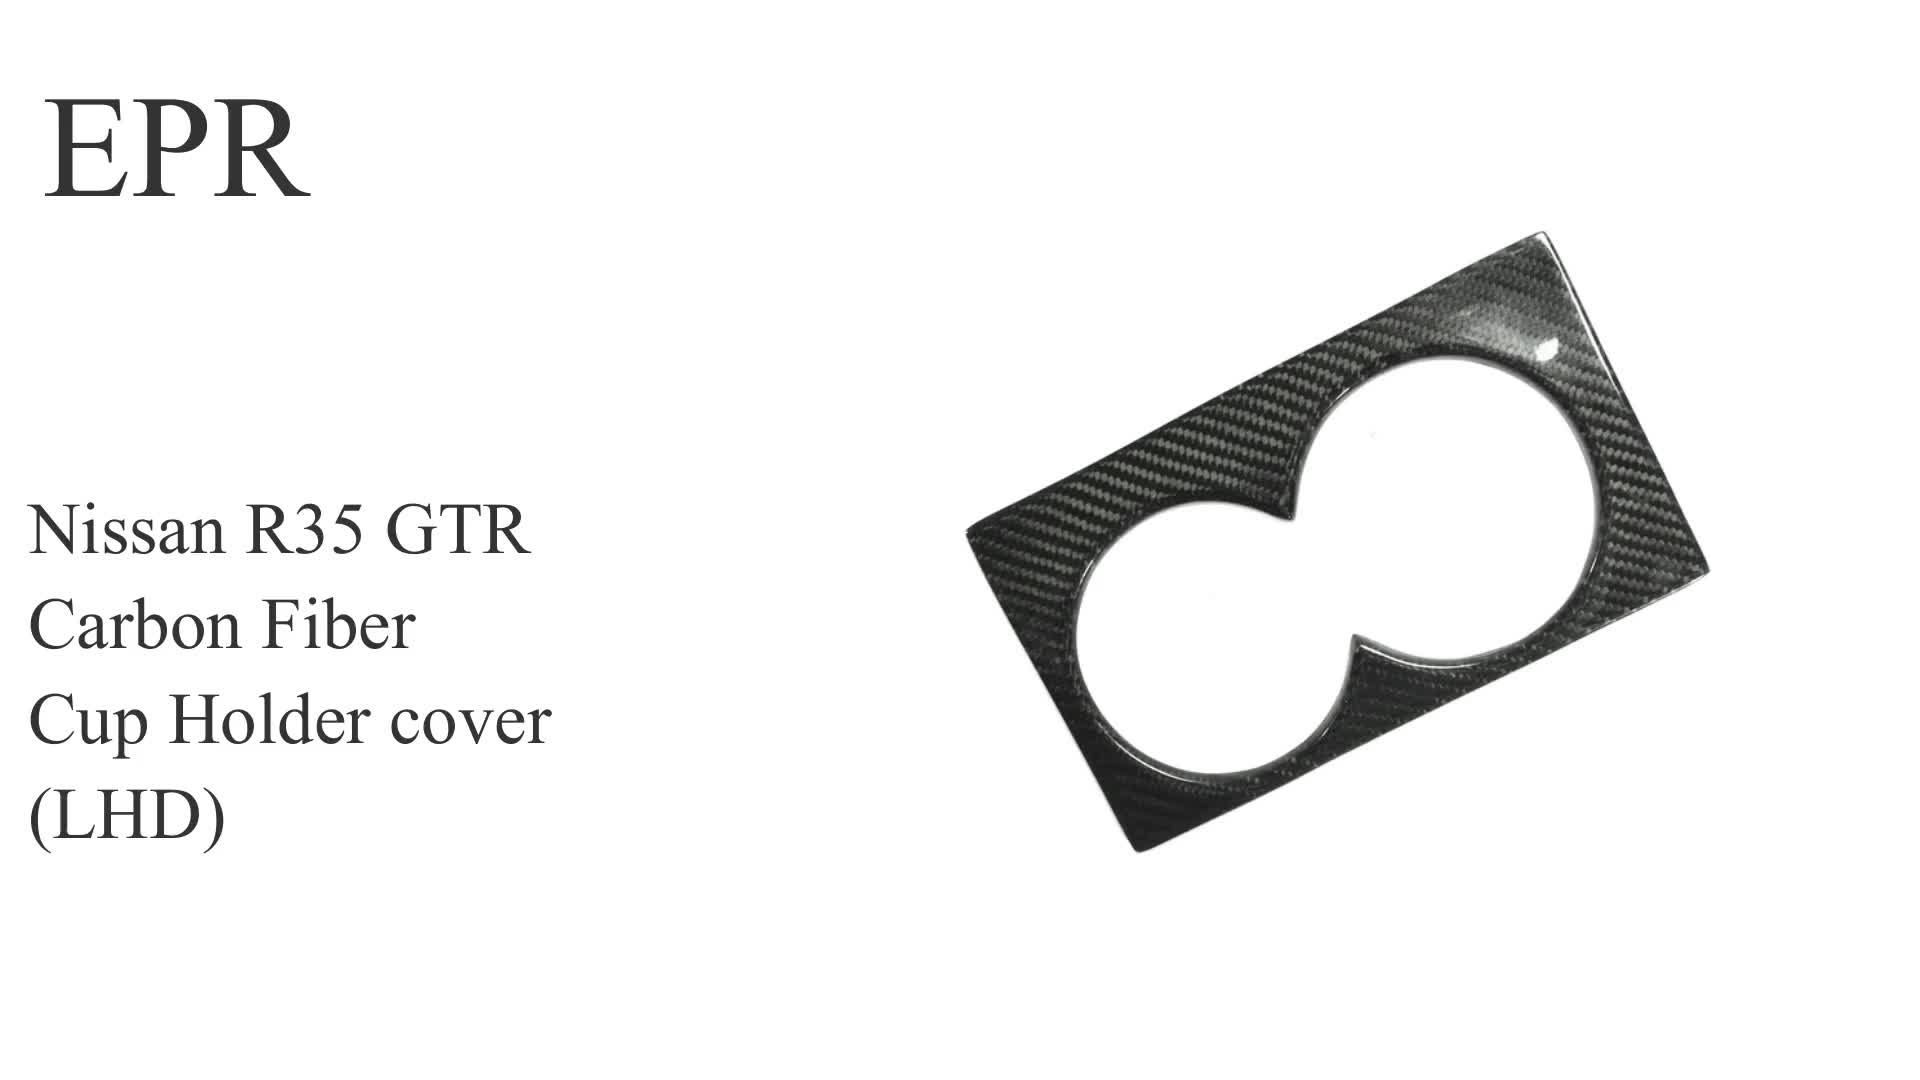 For Nissan GTR R35 GT-R Carbon Fiber Cup Holder Cover (LHD)